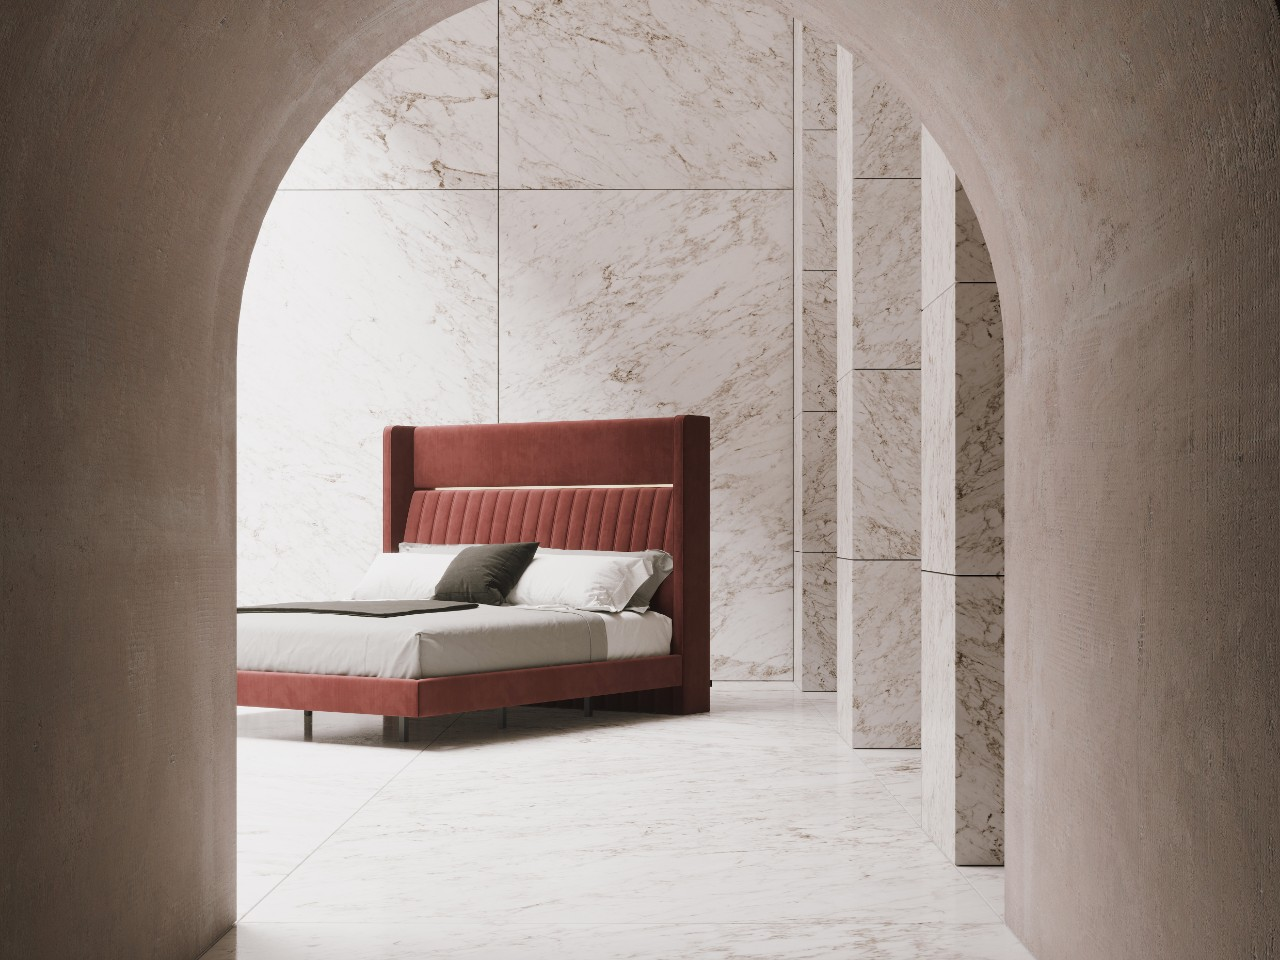 bardot-bed-capital-collection-headboards-velvet-upholstery-master-bedroom-trends-projects-design-domkapa